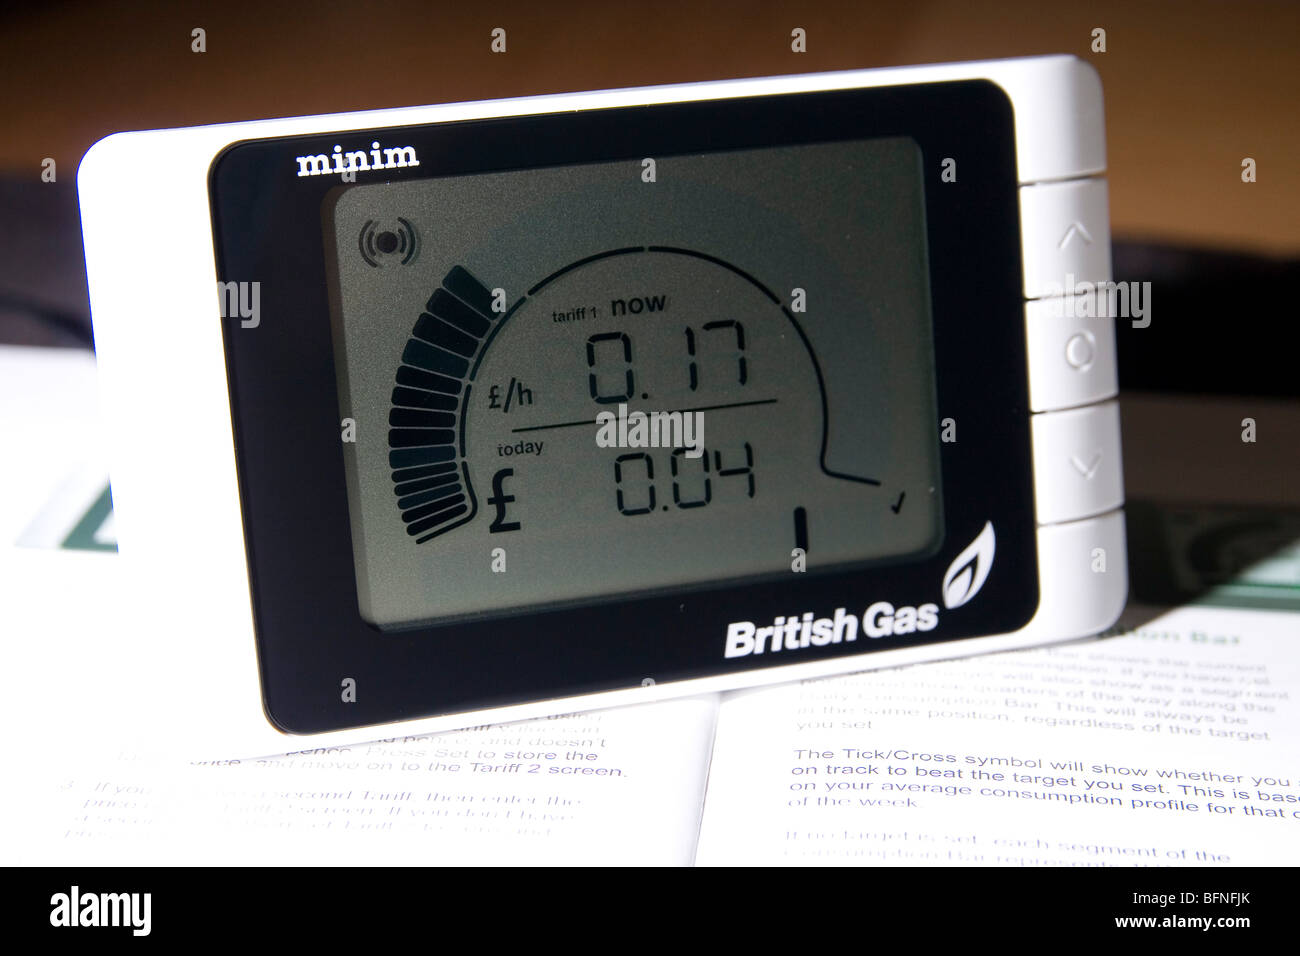 A British Gas Minim Smart Meter - Stock Image